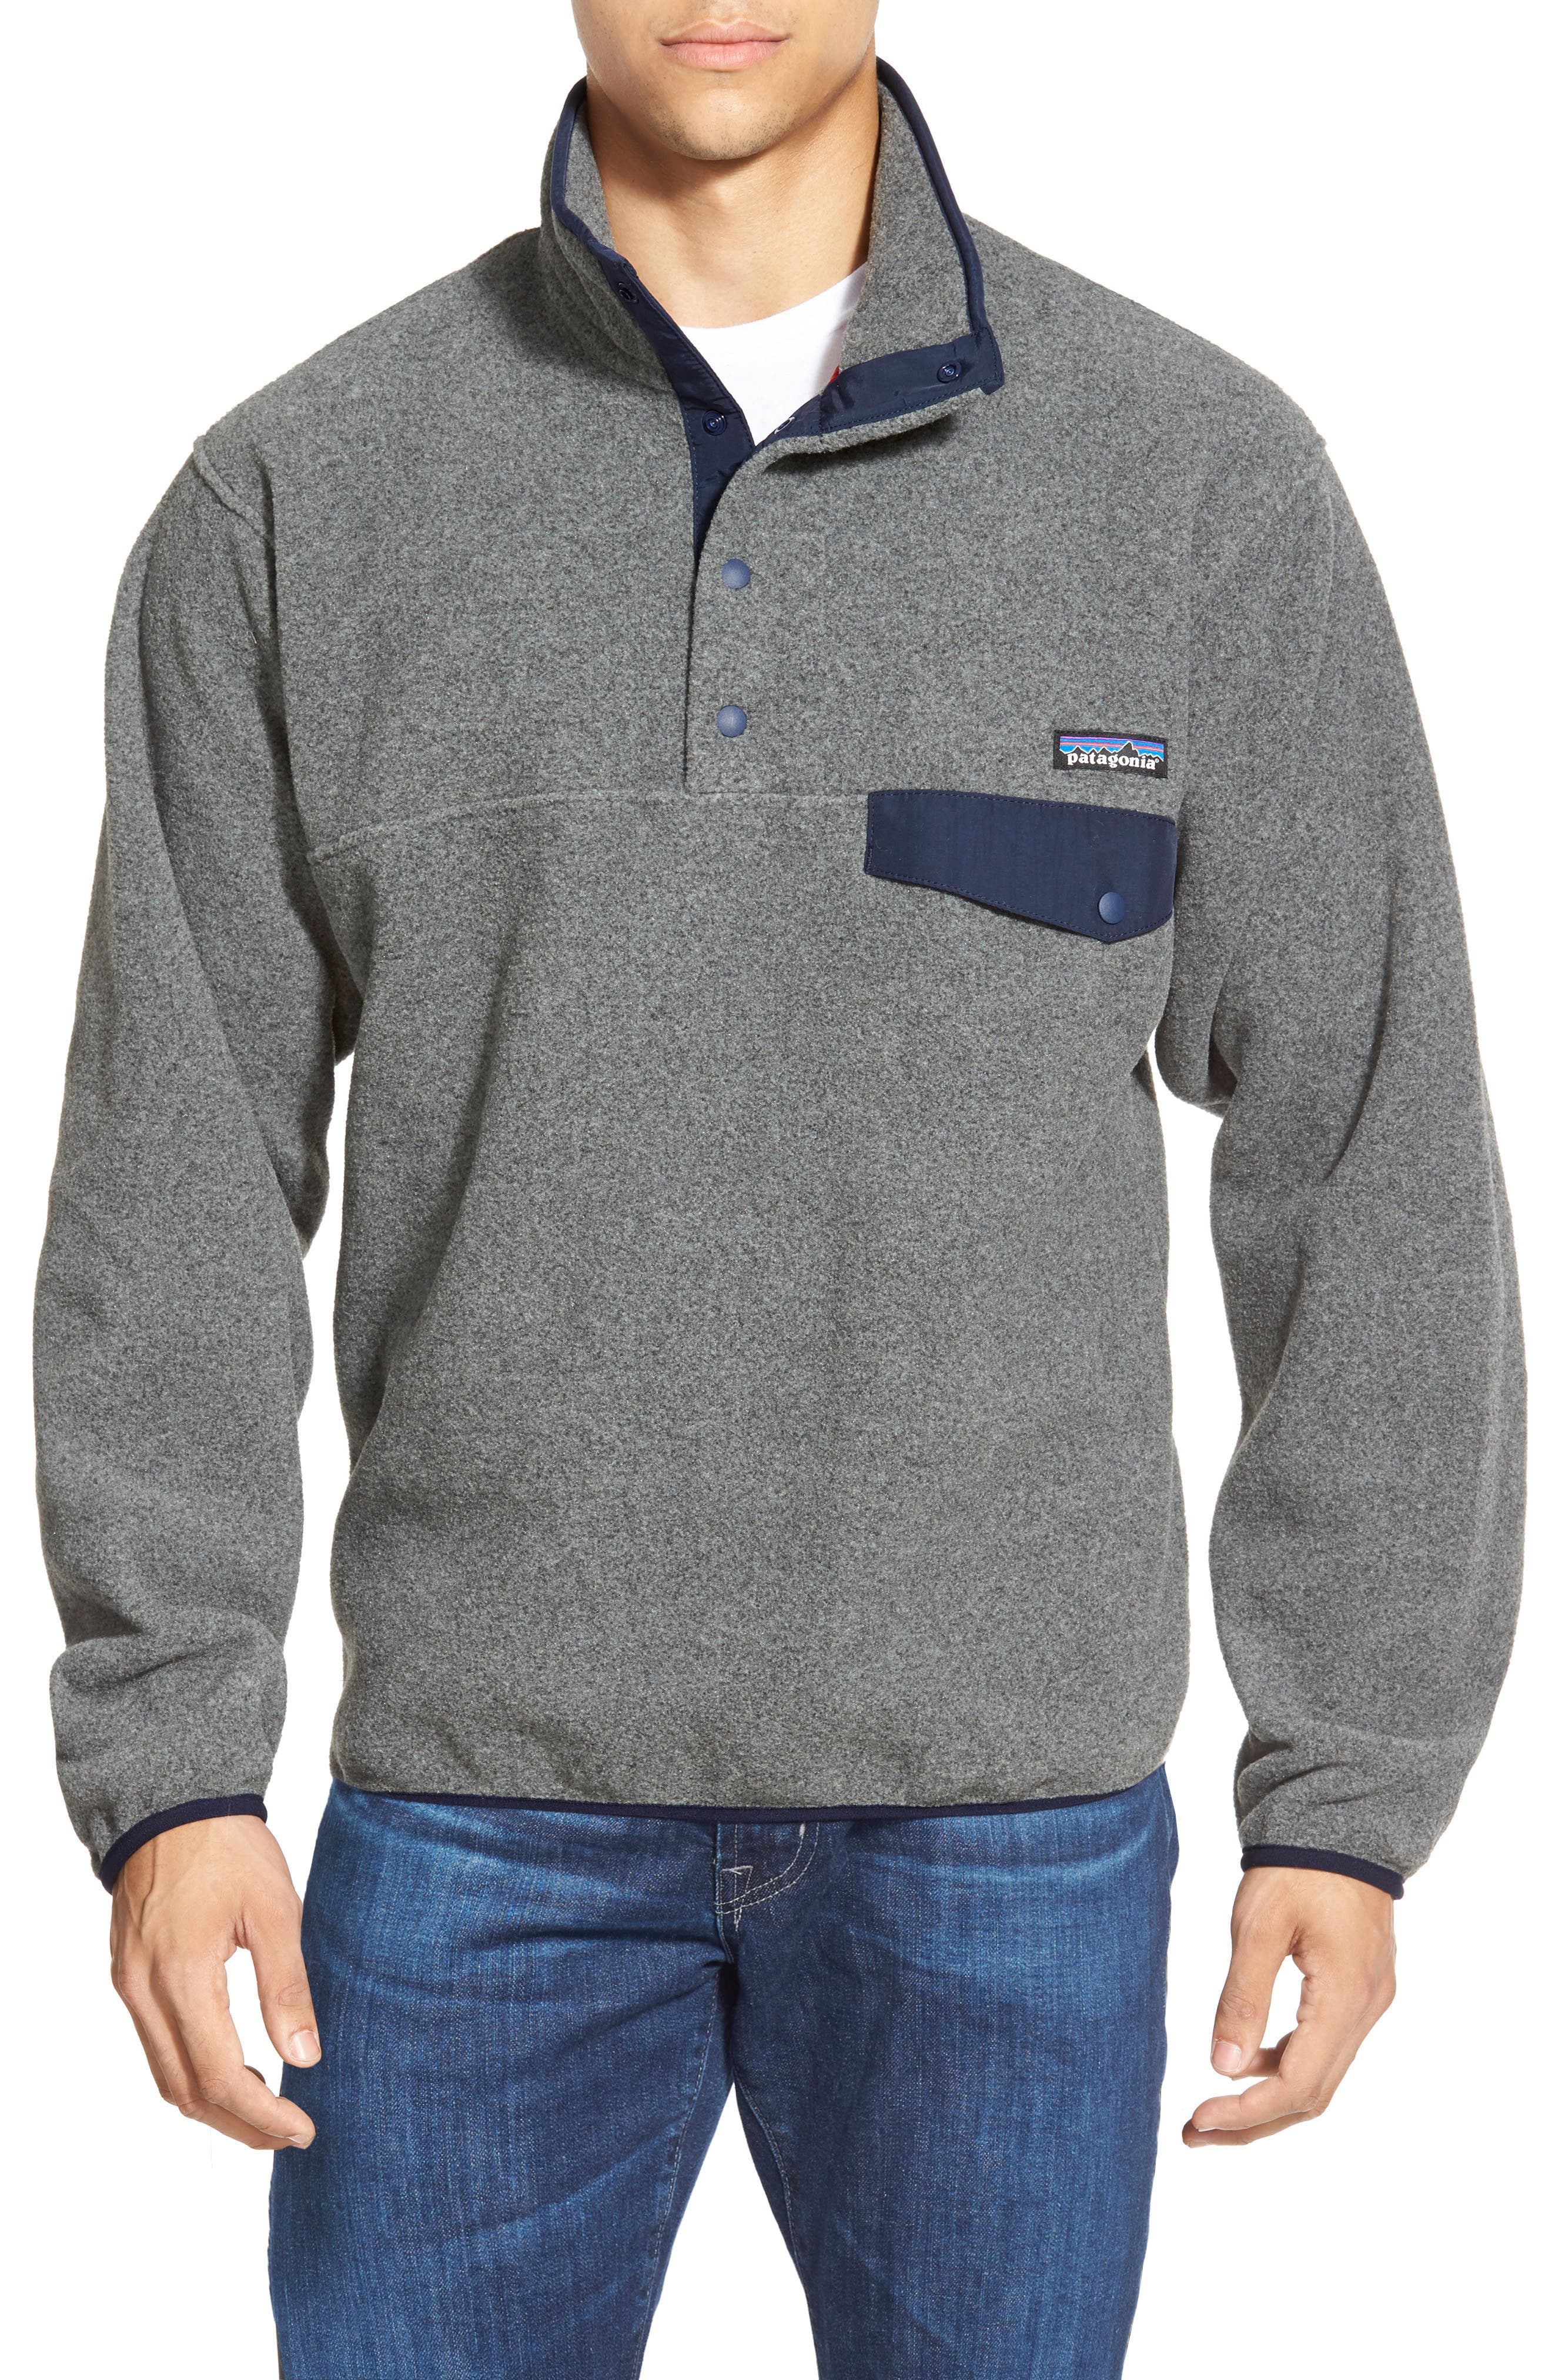 Synchilla<sup>®</sup> Snap-T<sup>®</sup> Fleece Pullover,                             Alternate thumbnail 5, color,                             NICKEL/ NAVY BLUE